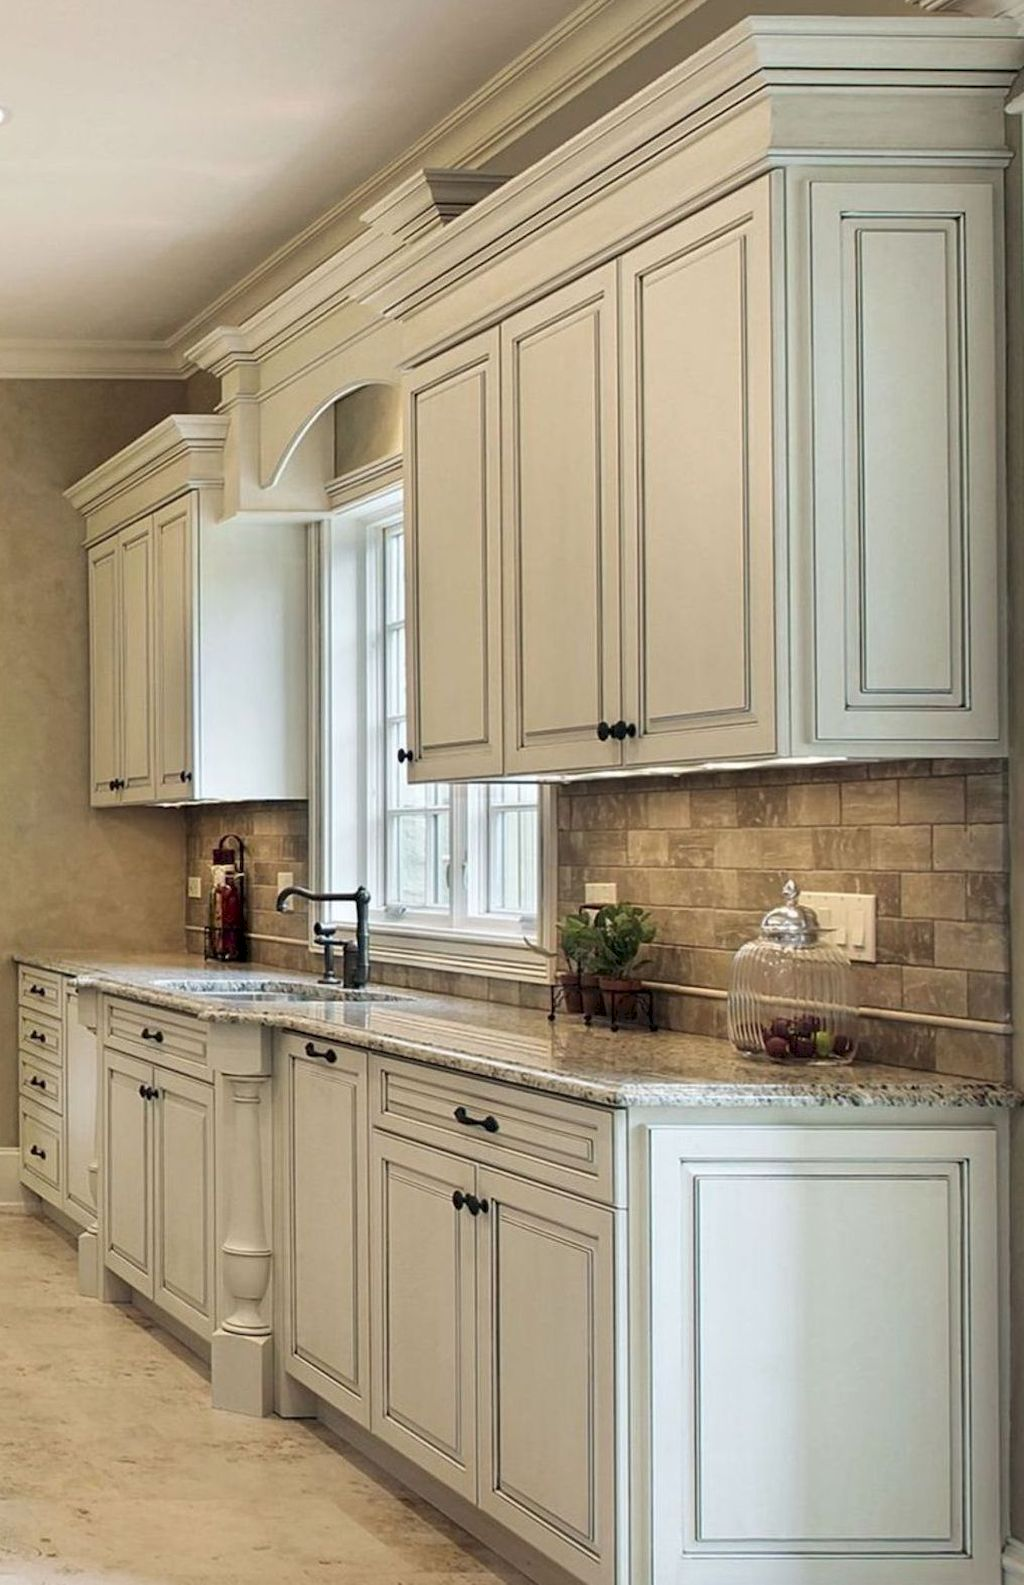 Adorable 100 Amazing White Kitchen Cabinet Design Ideas Https Homearchite Com 2018 02 22 Antique White Kitchen Kitchen Design Antique White Kitchen Cabinets